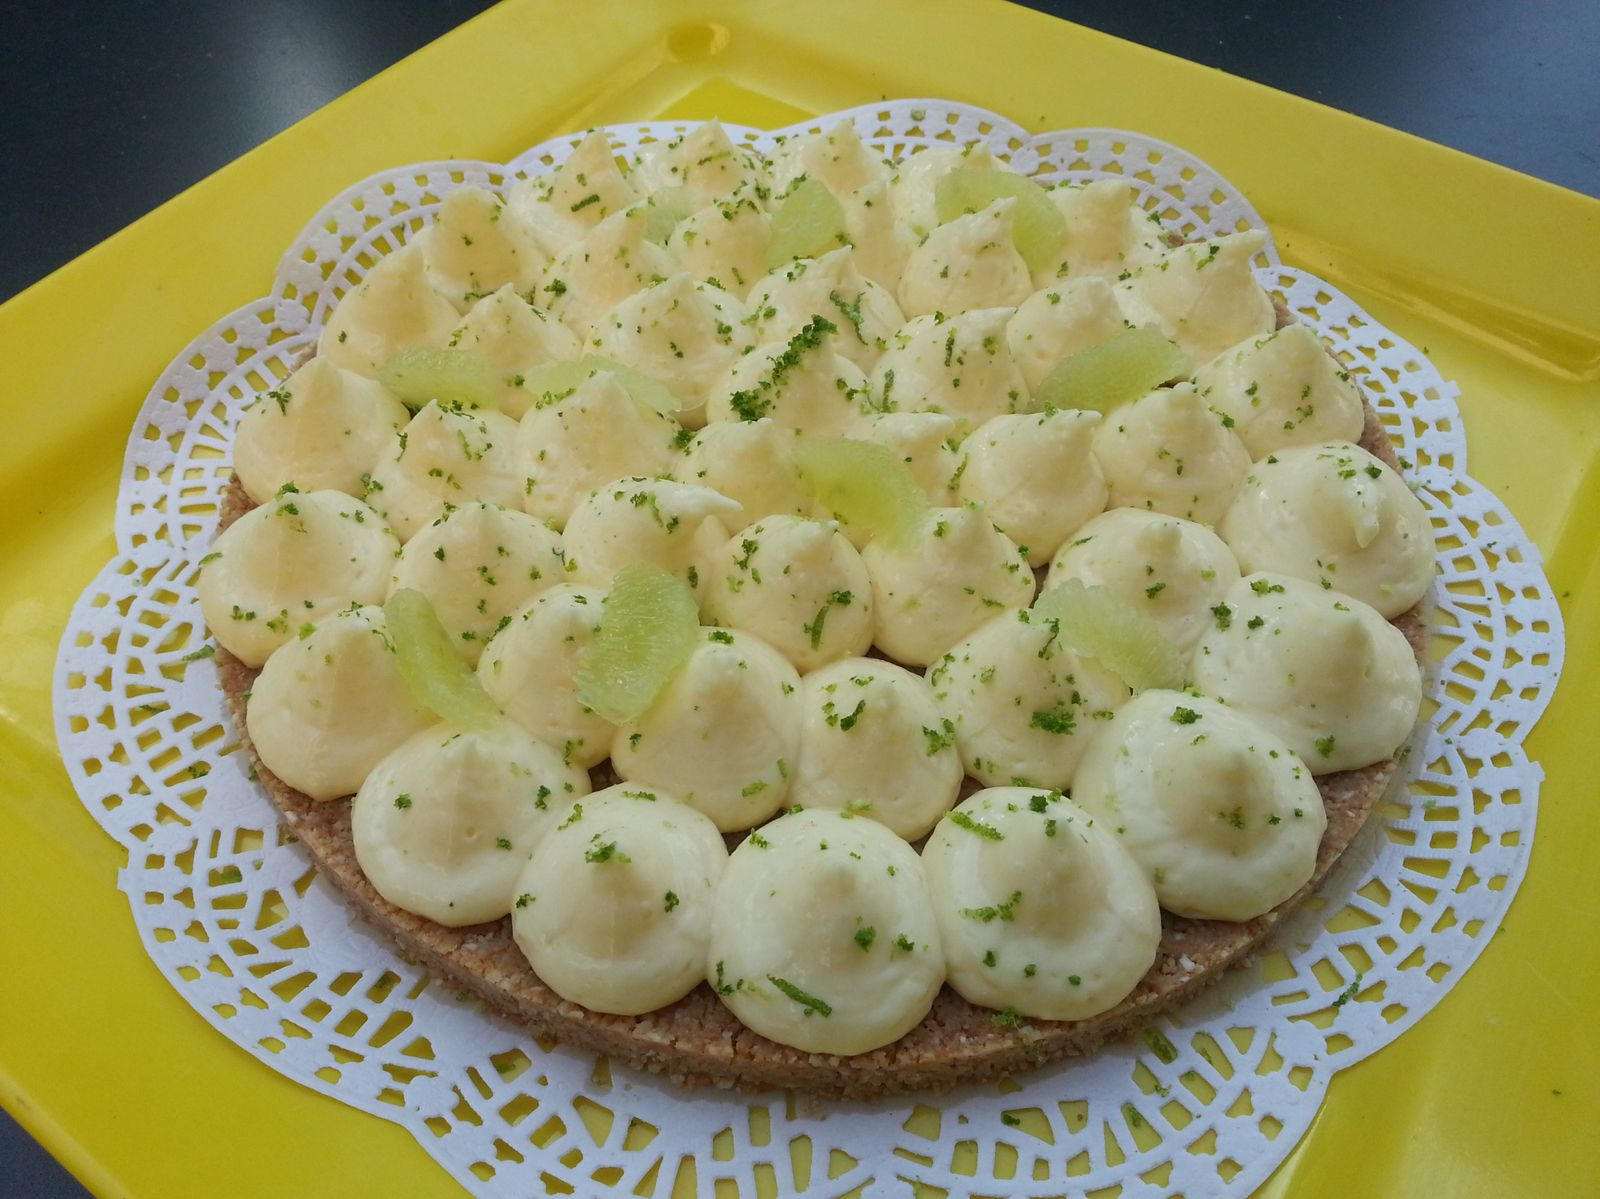 Tarte au citron acidulée à souhait de Christophe Michalak - Angel's Kitchen